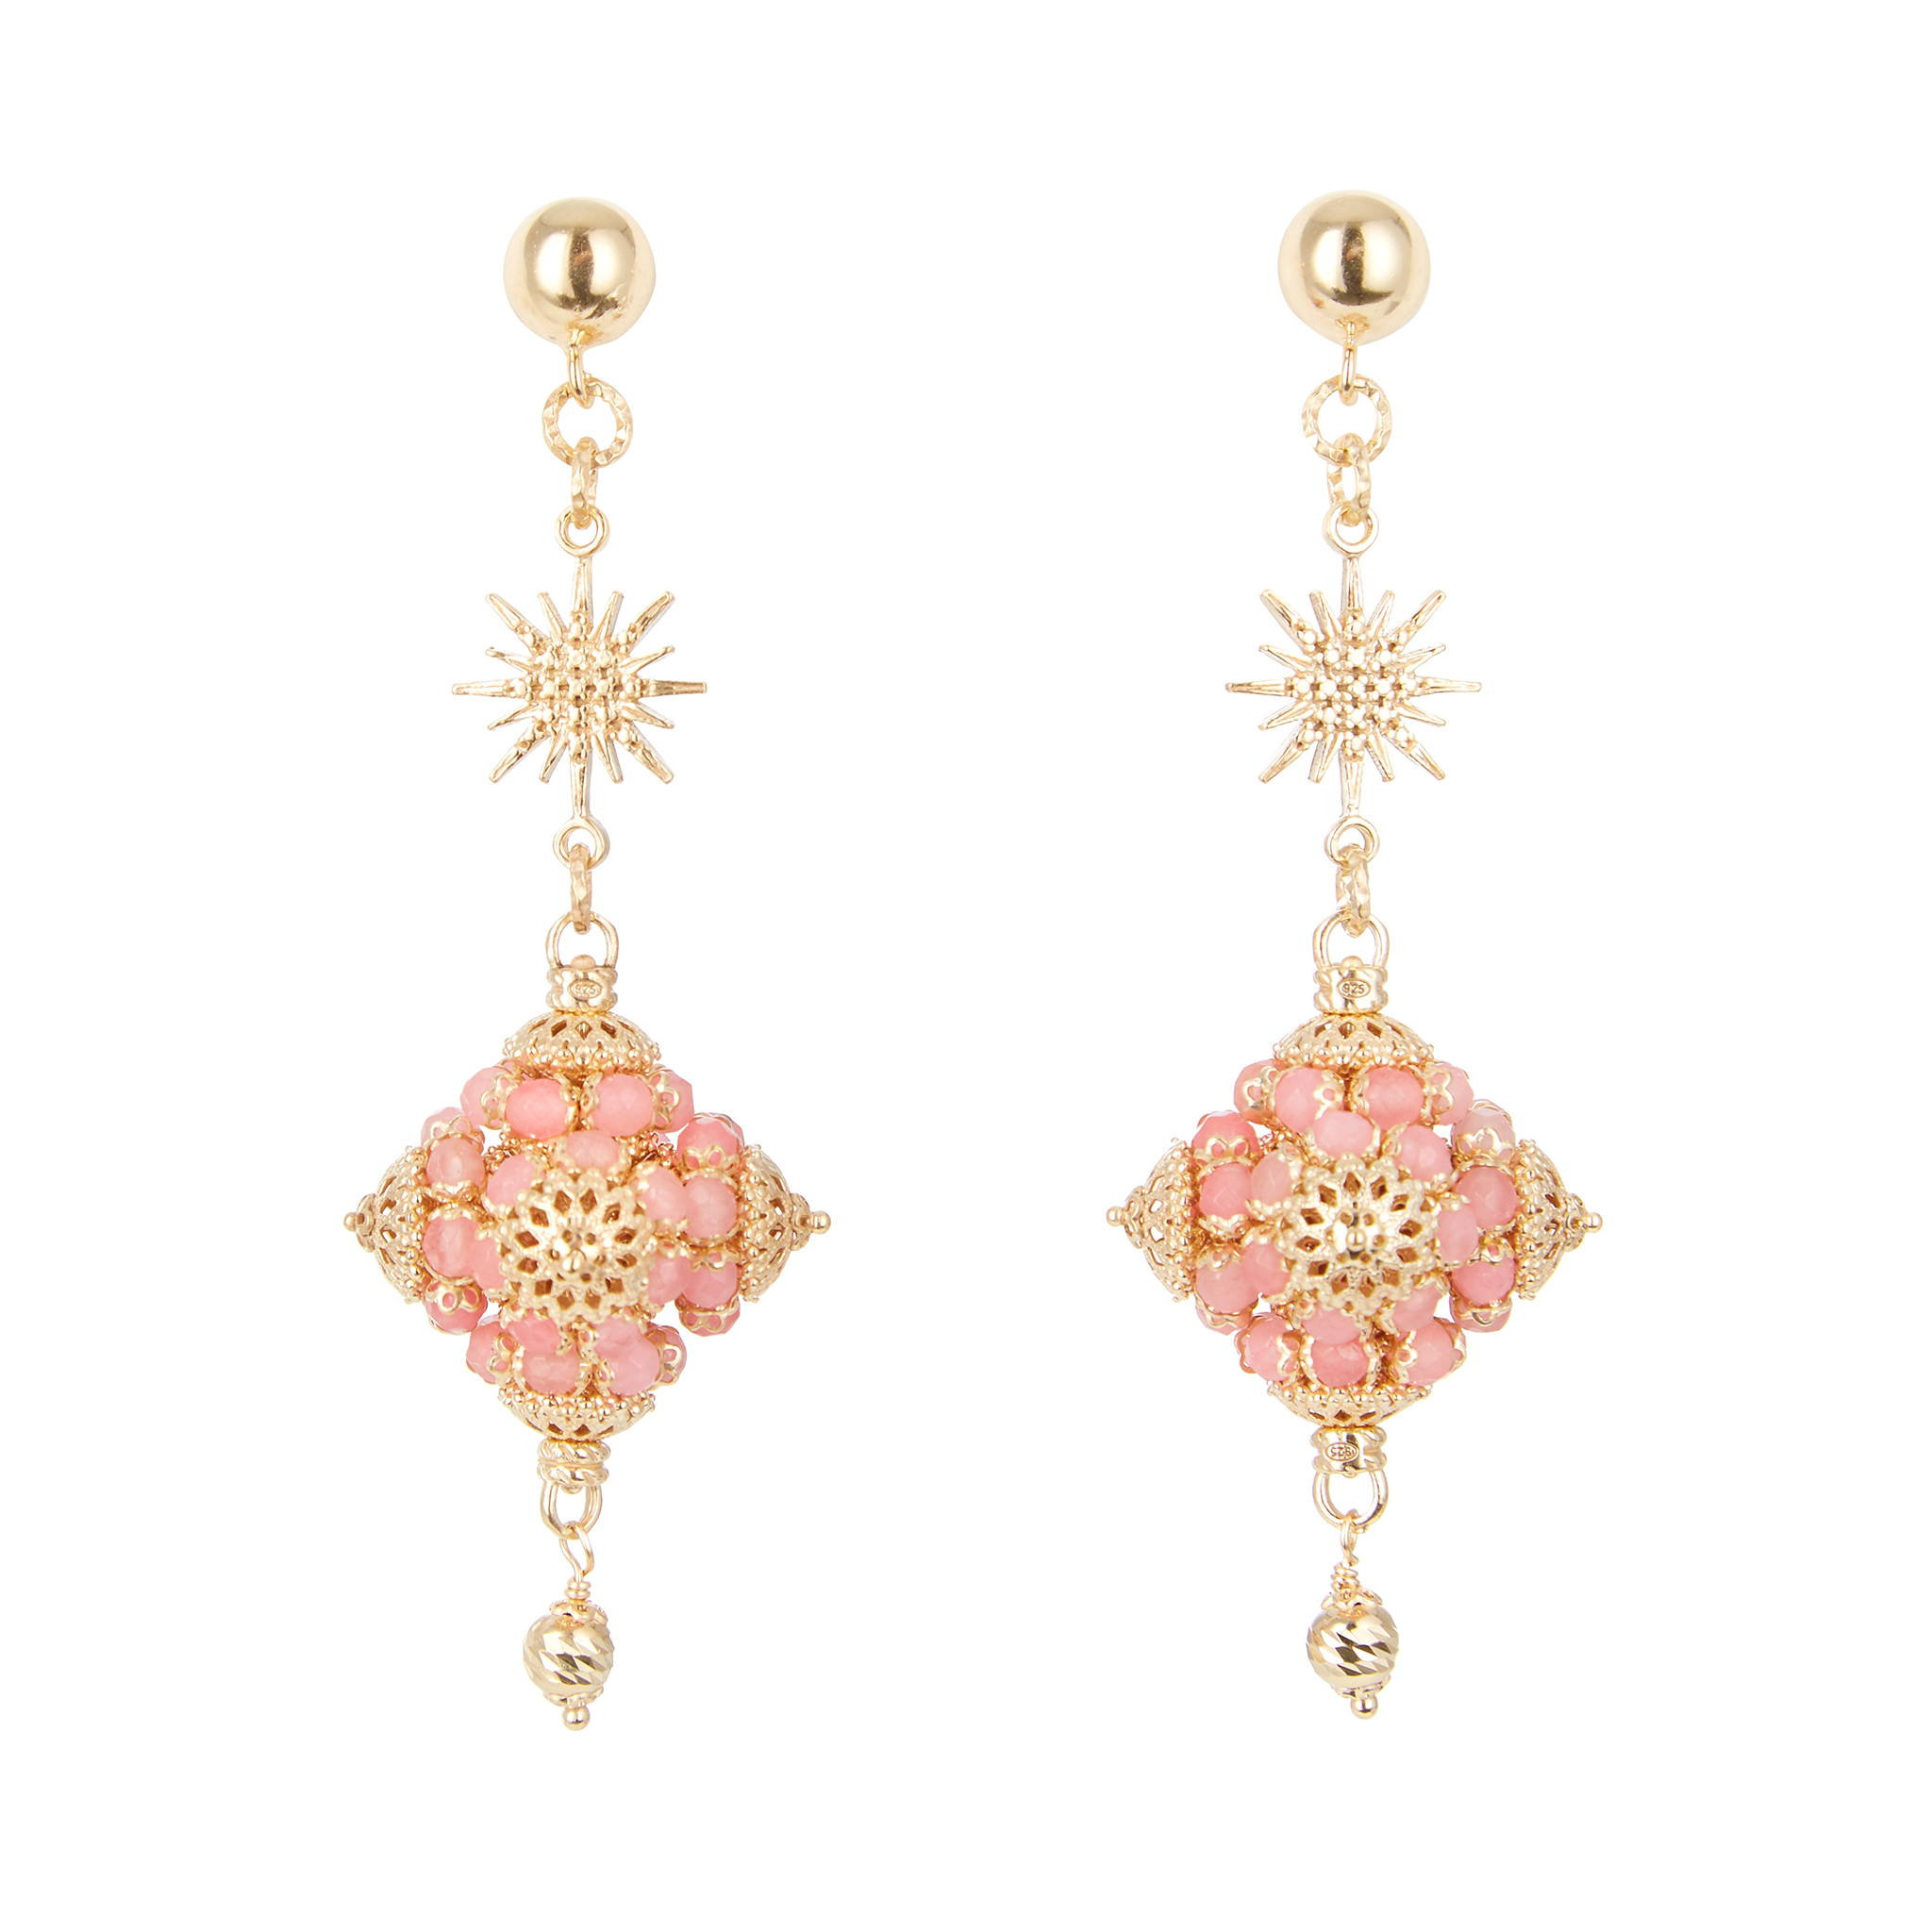 SORU JEWELLERY LOREDANA EARRINGS, SORU PINK AND GOLD EARRINGS, SICILIANA SORU